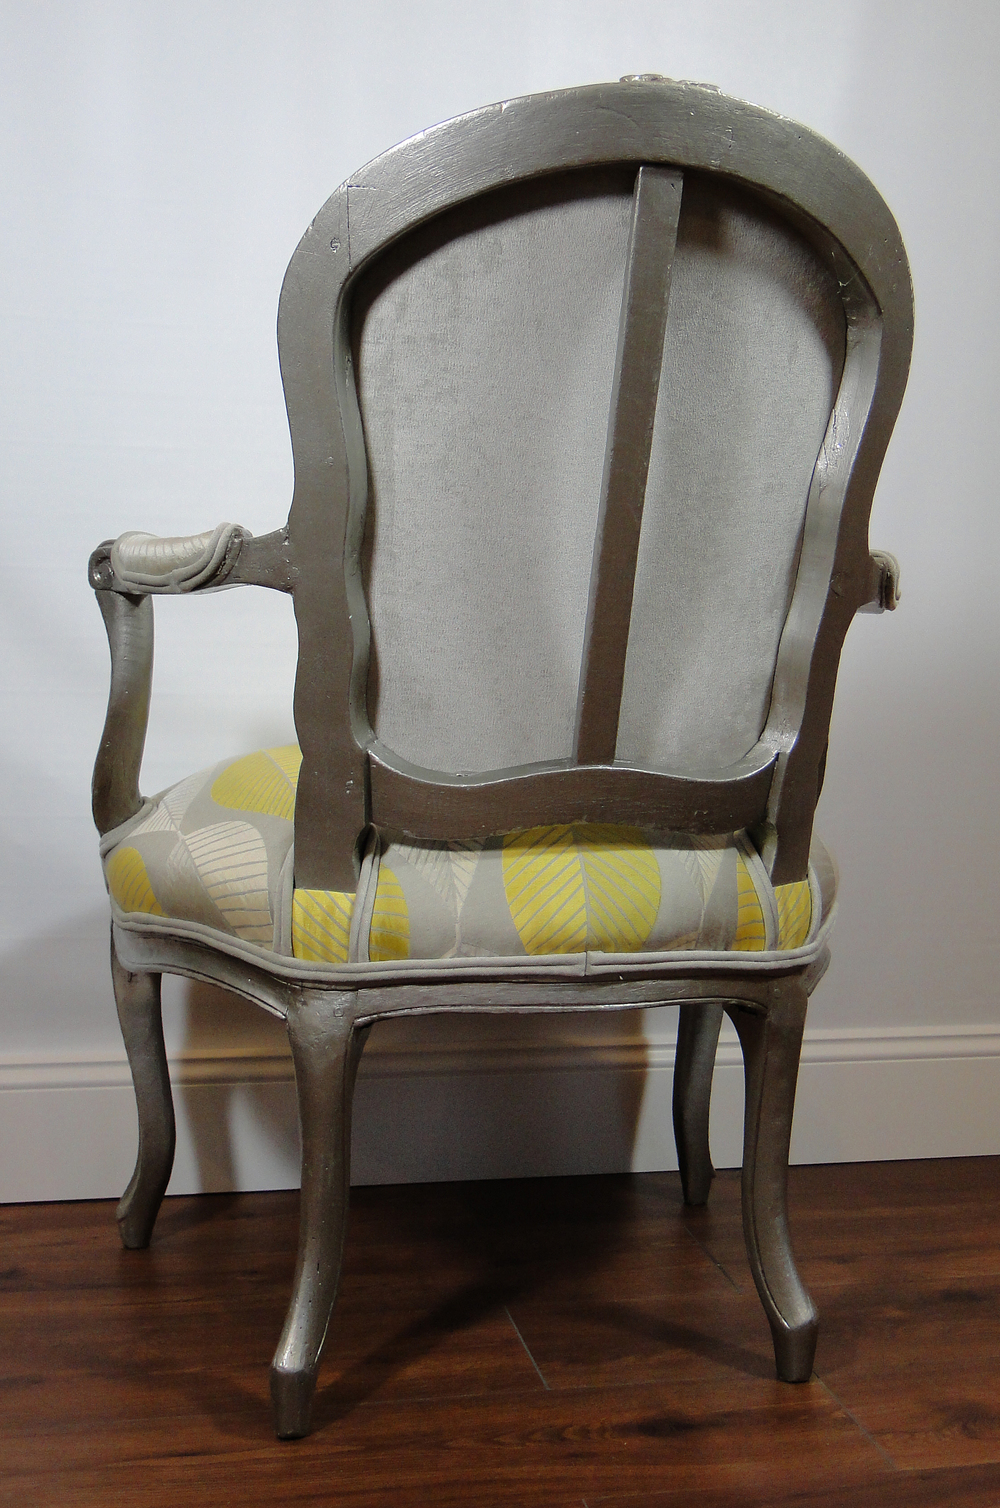 """After"" view of chair rear with contrasting fabric"